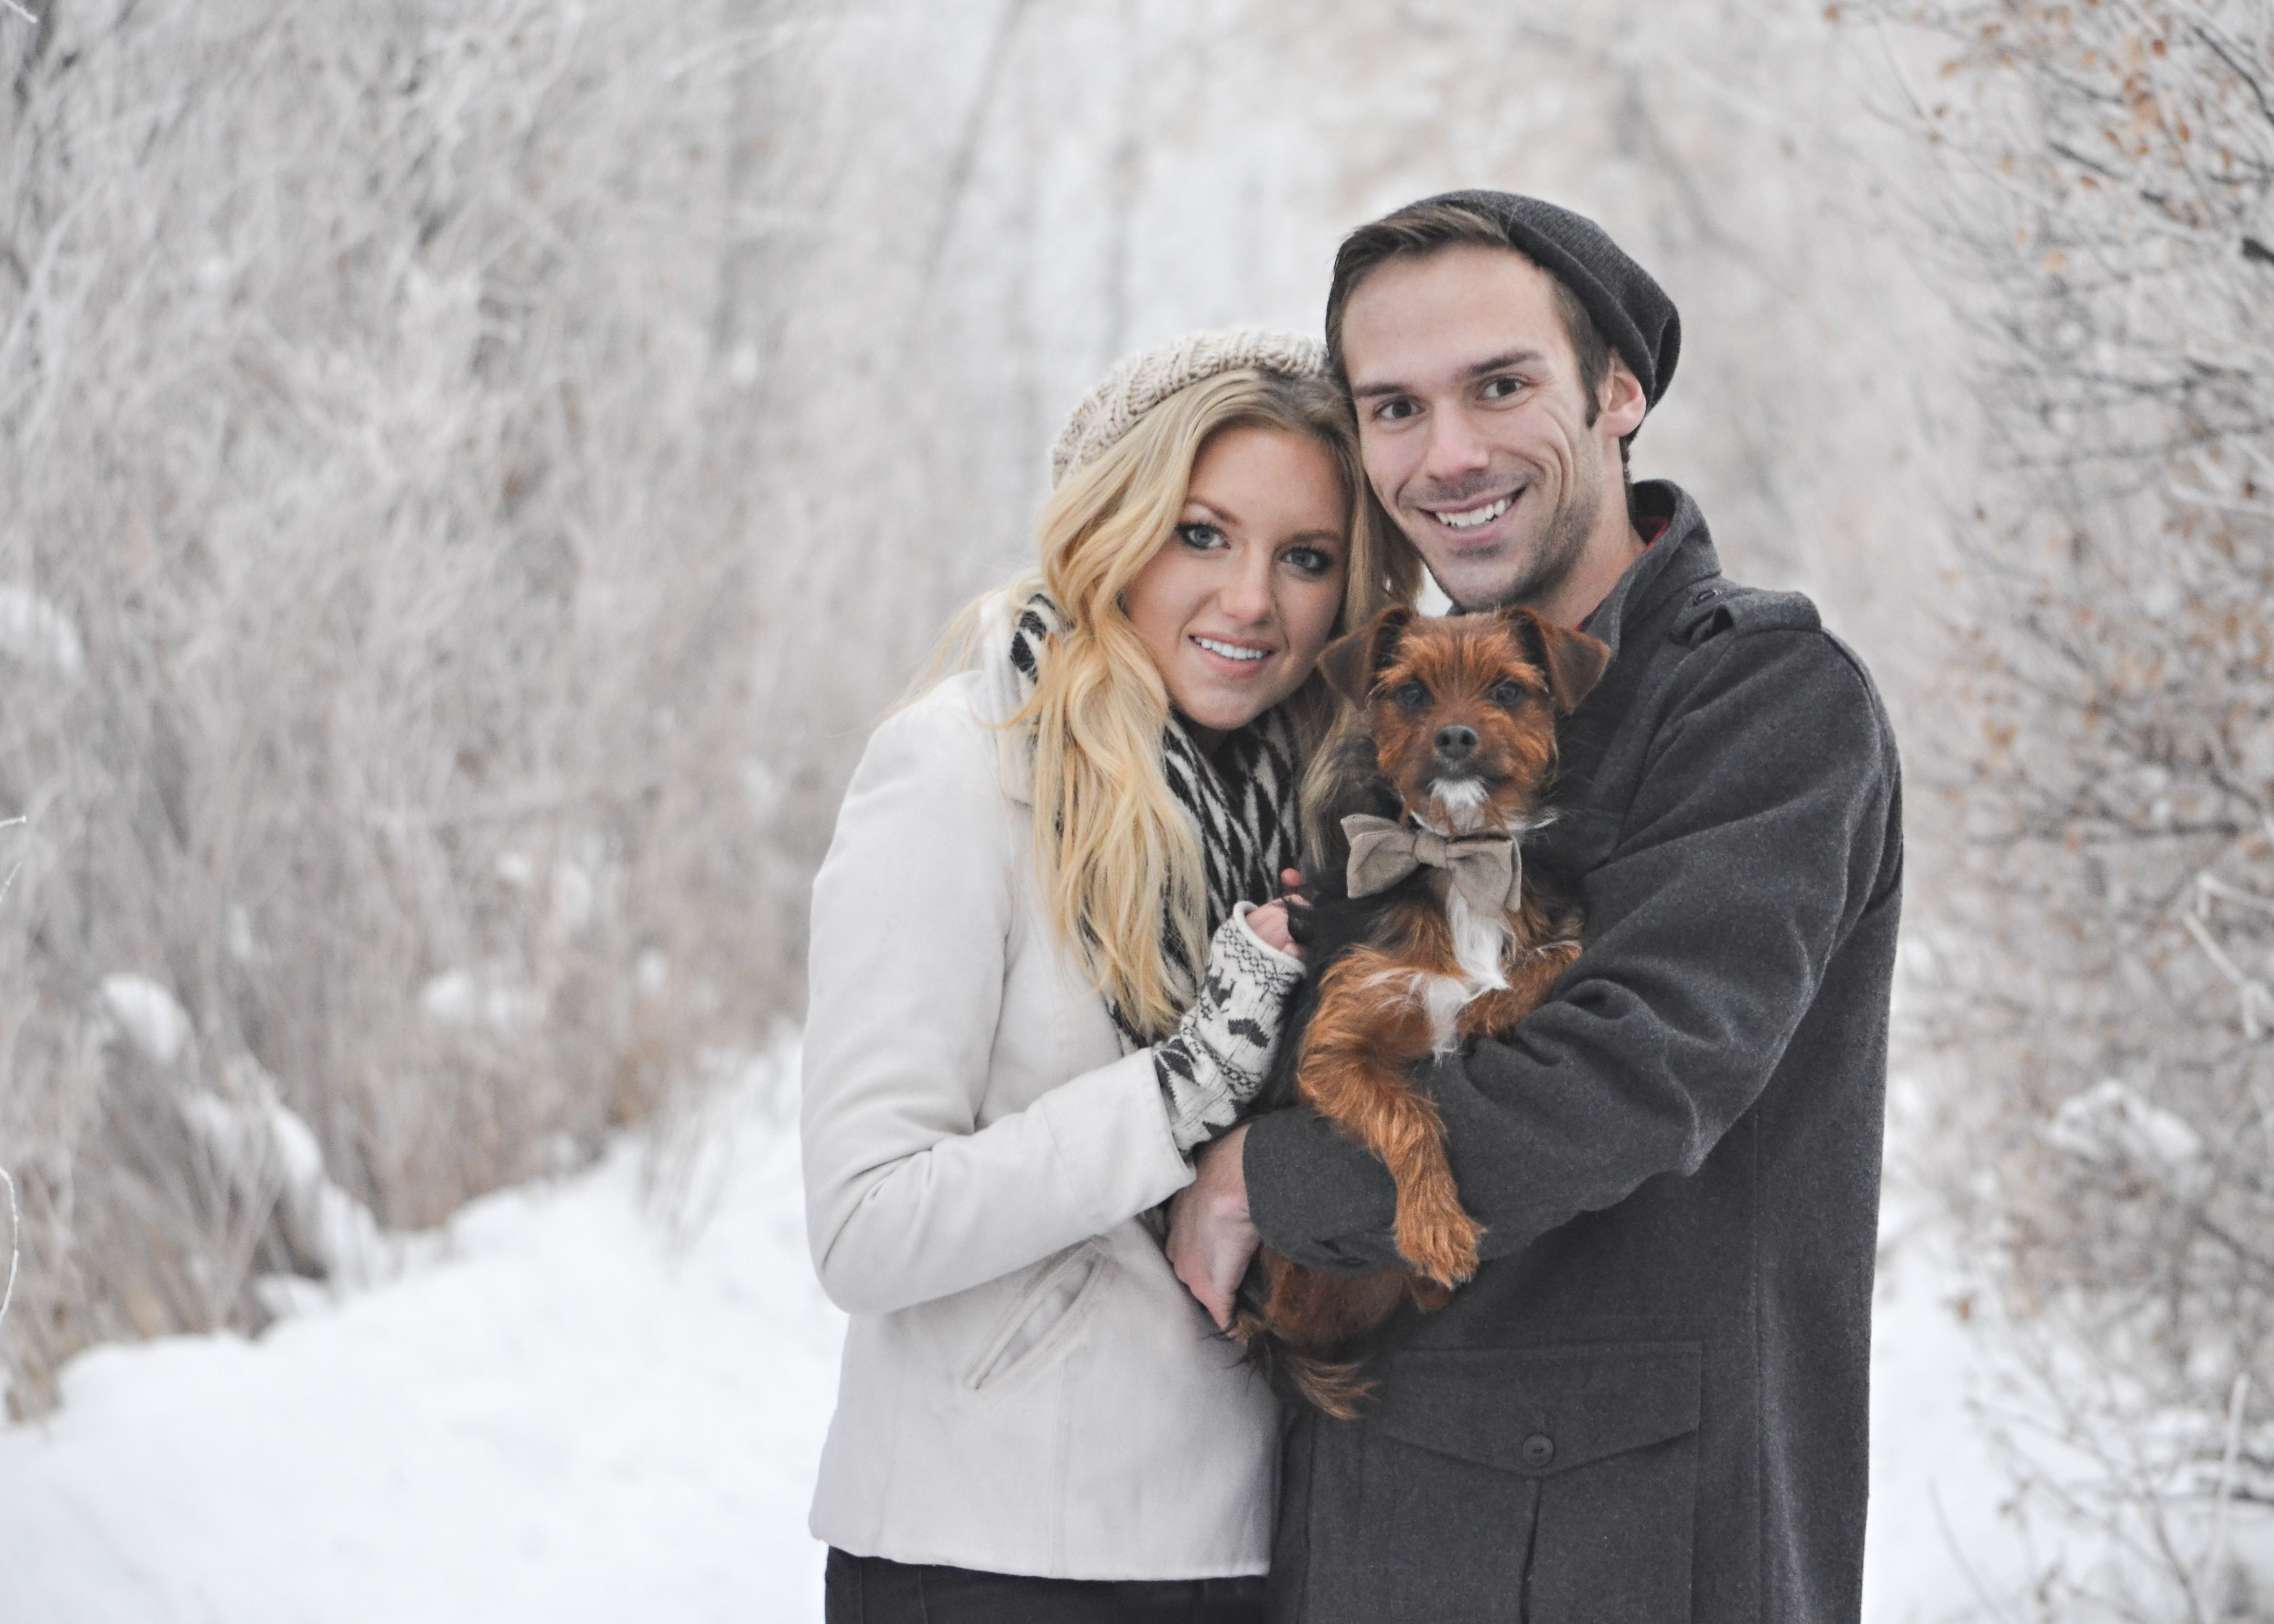 Christmas Pictures With Couple And Dog